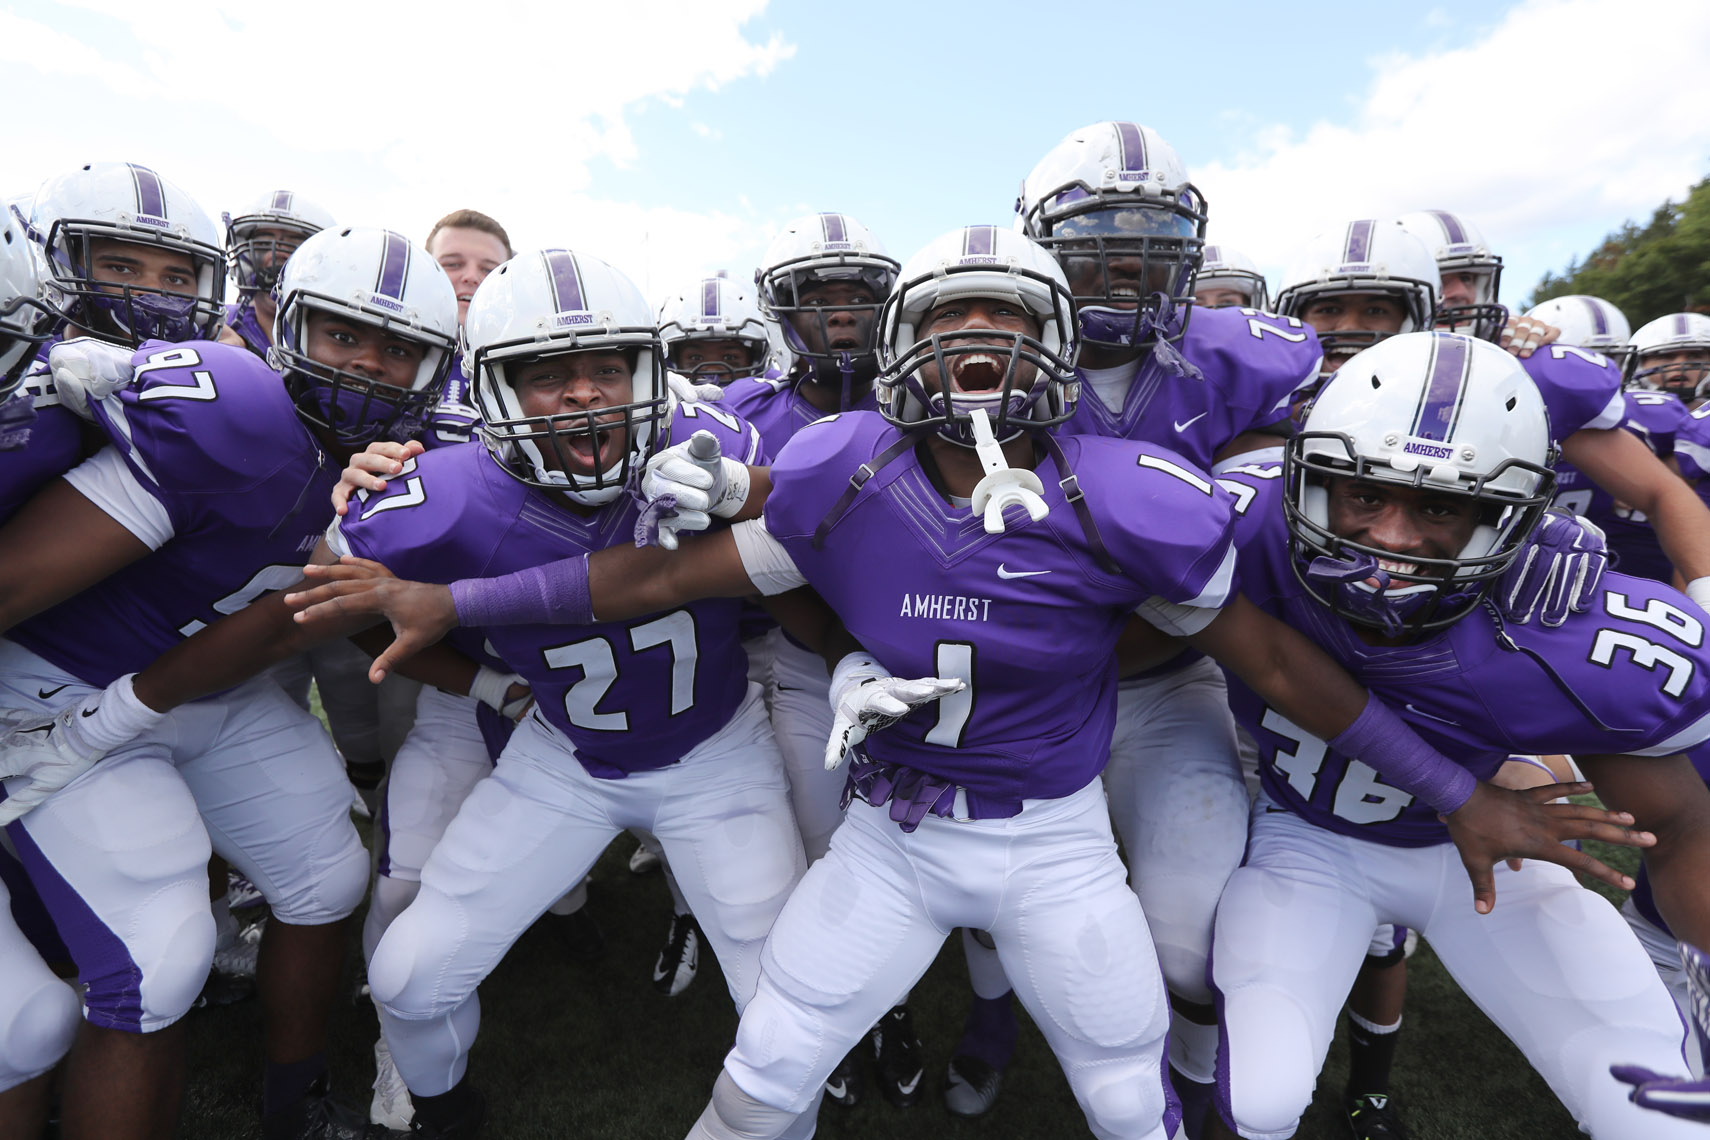 Amherst College football players celebrate a victory over Hamilton.